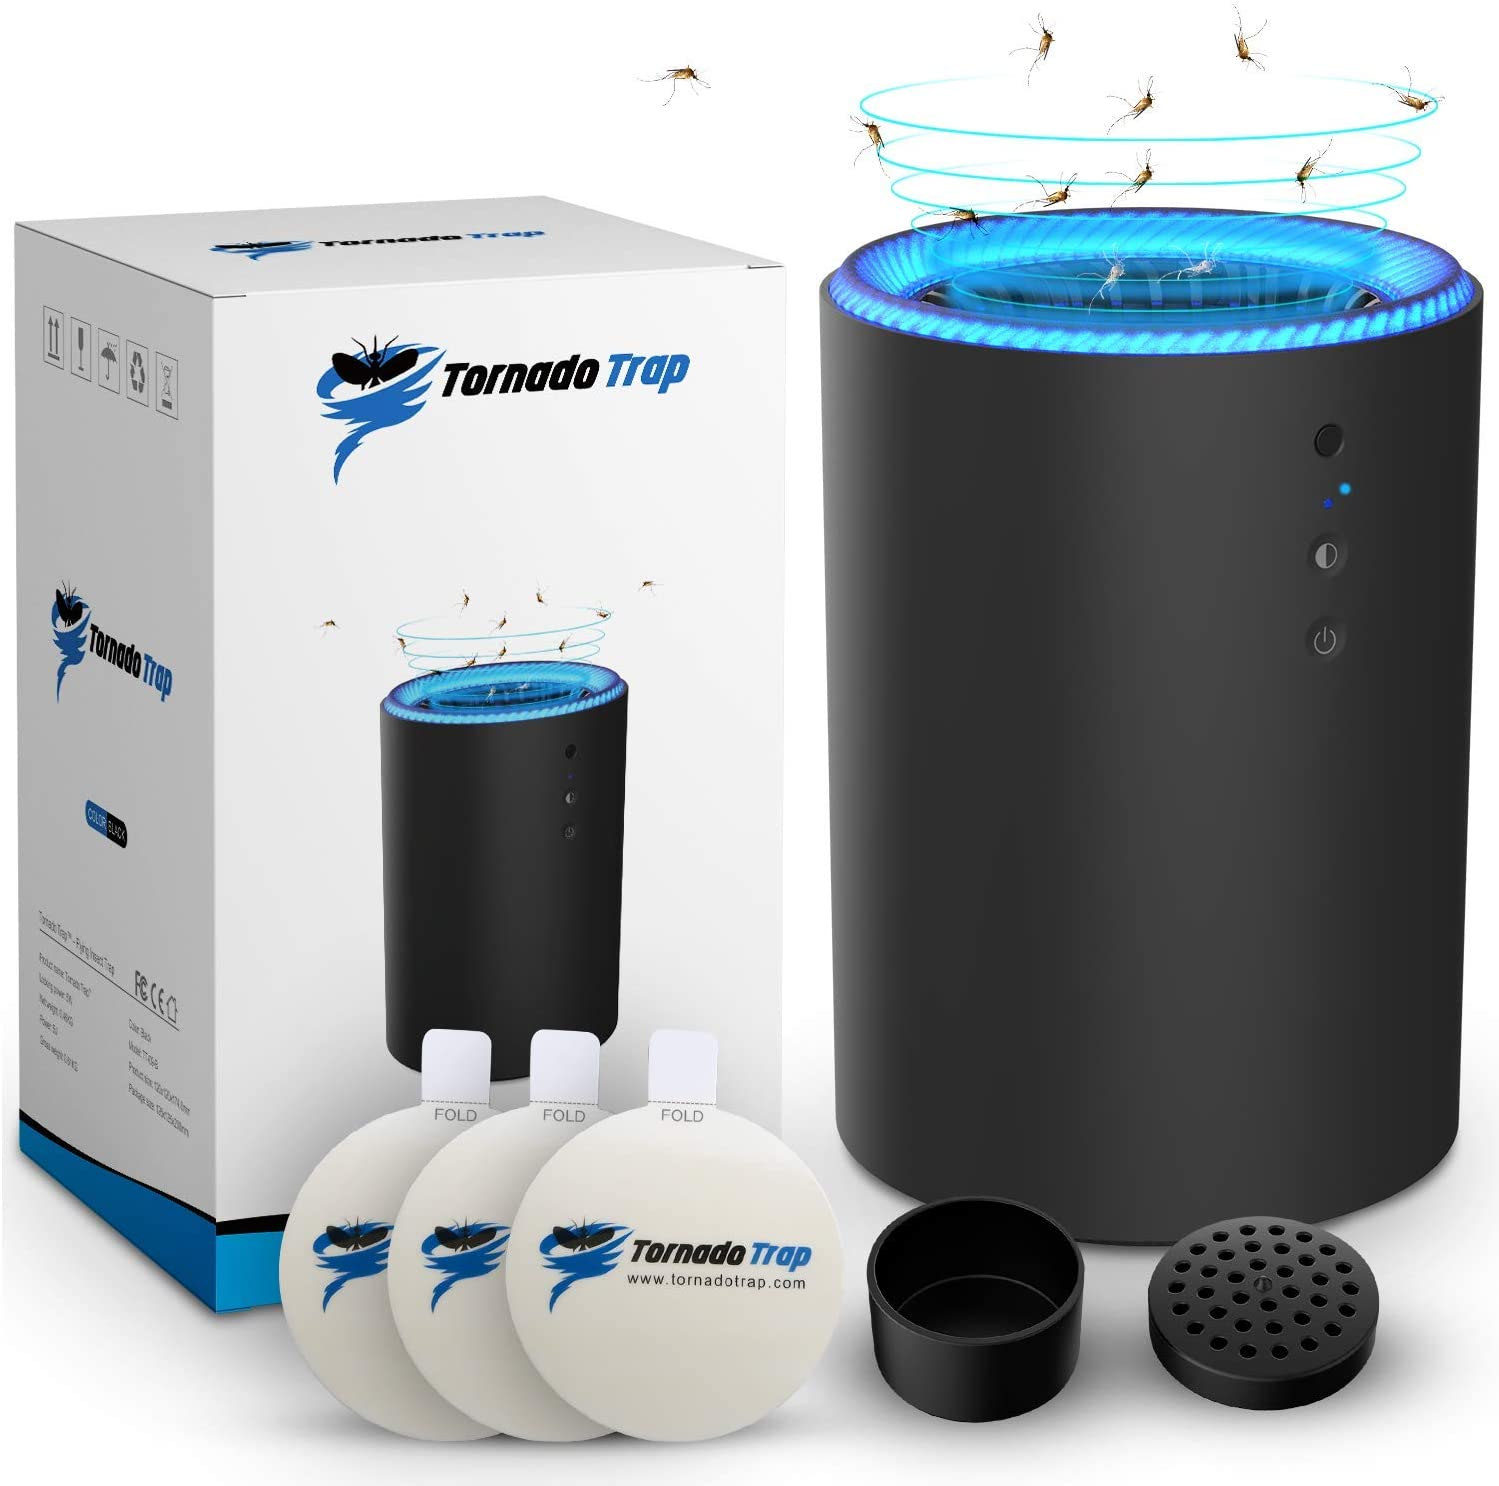 Tornado Trap Indoor Mosquito Fruit Fly Gnat Killer - Electronic Flying Insect Bug Catcher uses Light Lamp and/or Natural Bait, 5w Fan, Sticky Glue Boards, No Zapper, Child Safe, Non-Toxic (Black)